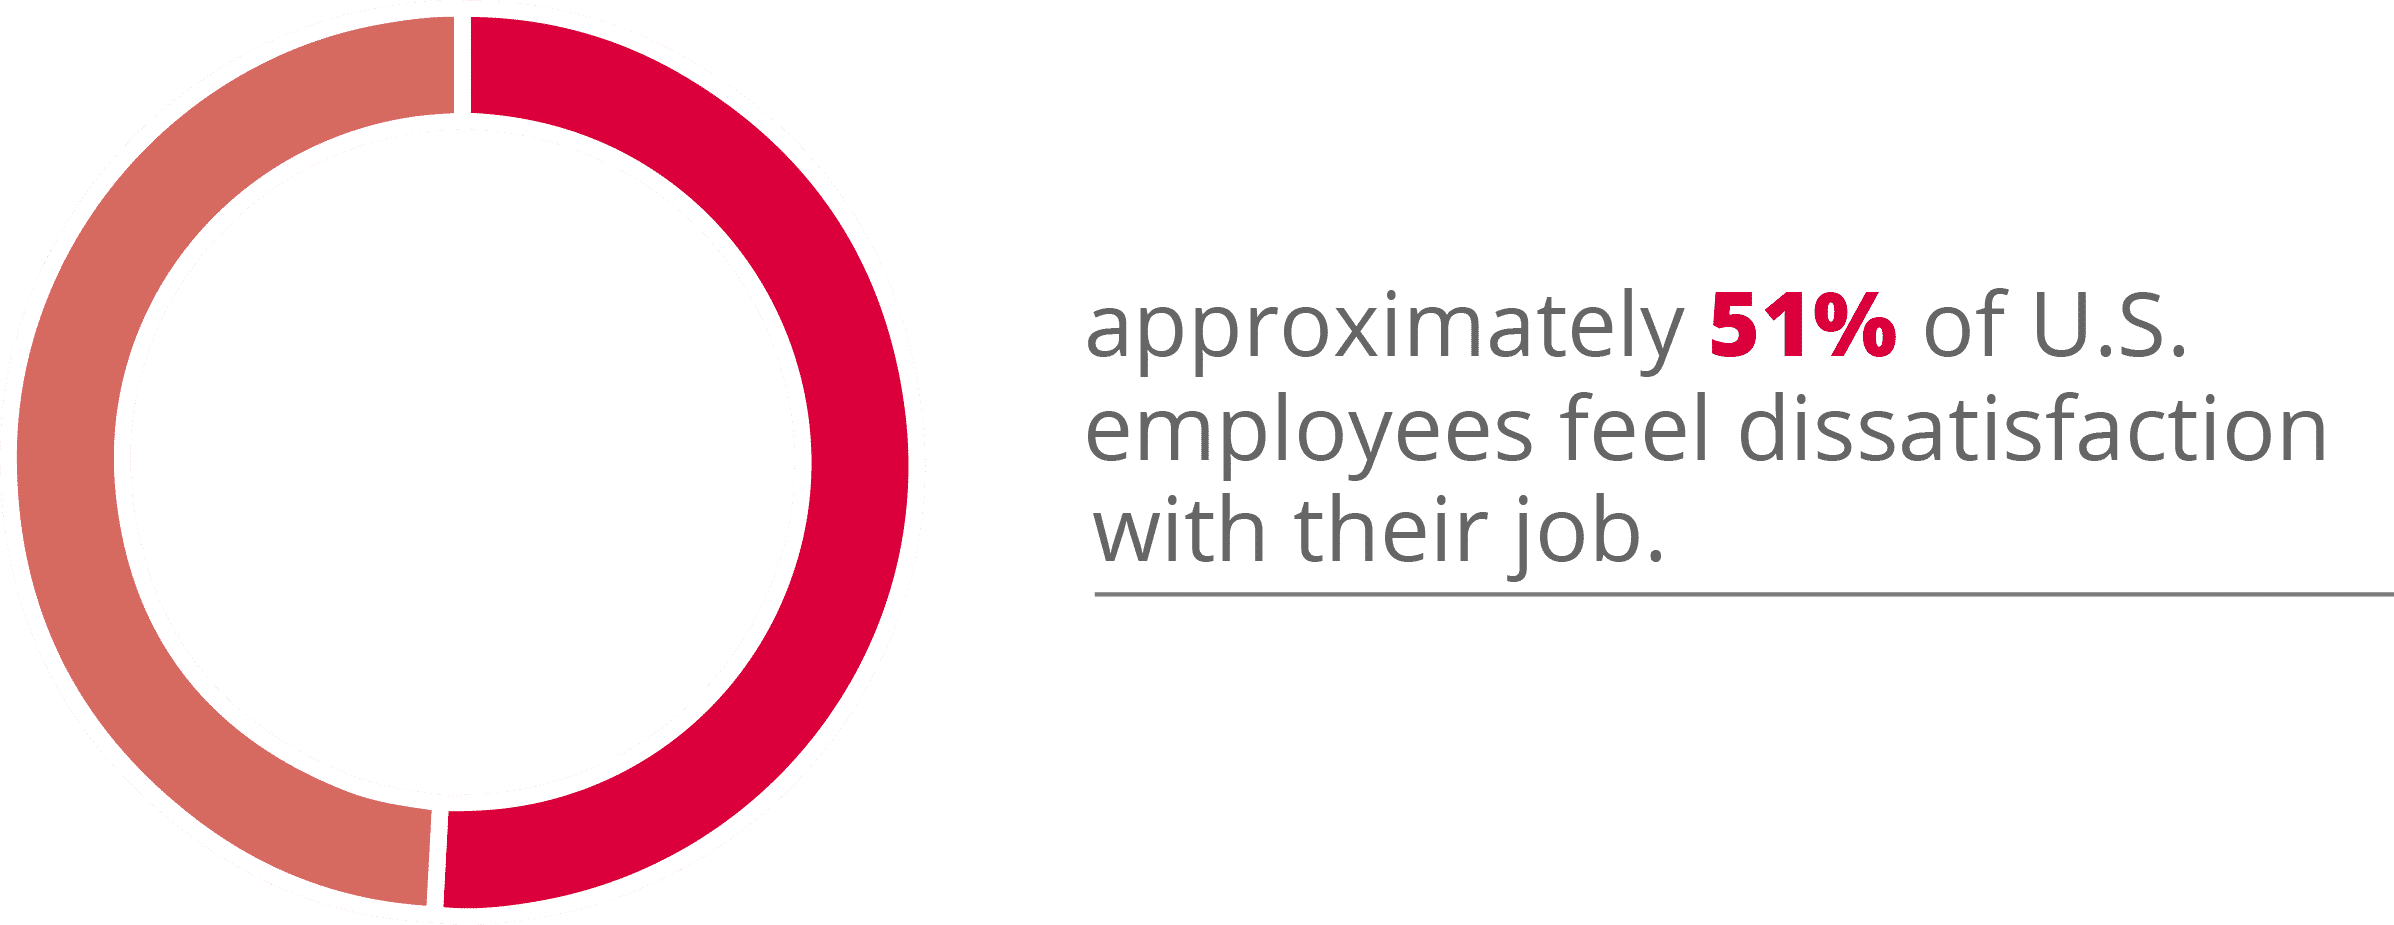 51% of employees feel dissatisfaction from their jobs